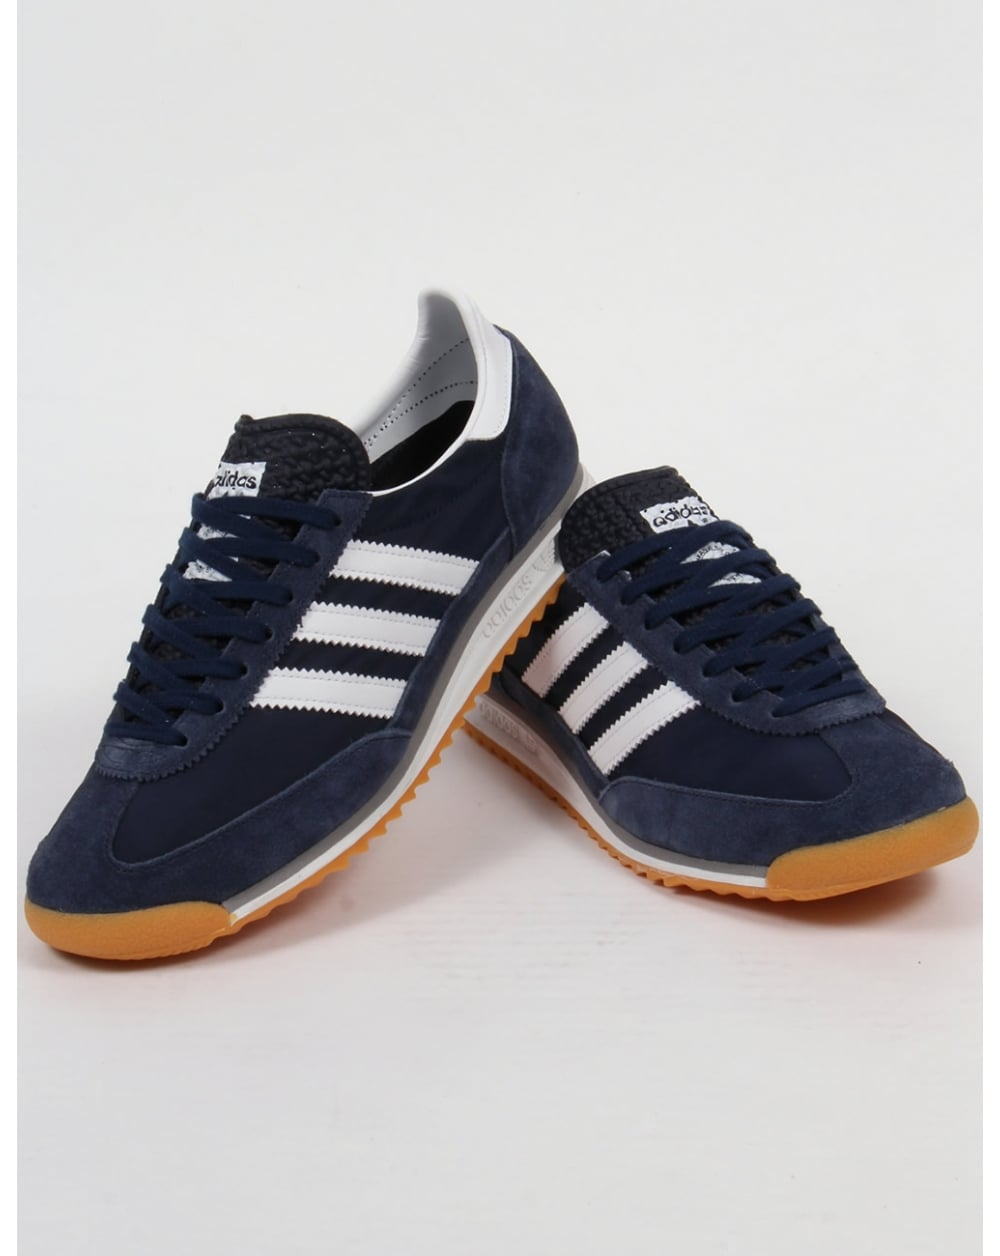 Adidas Sl 72 Trainers Navy White Originals Shoes Sneakers Runner